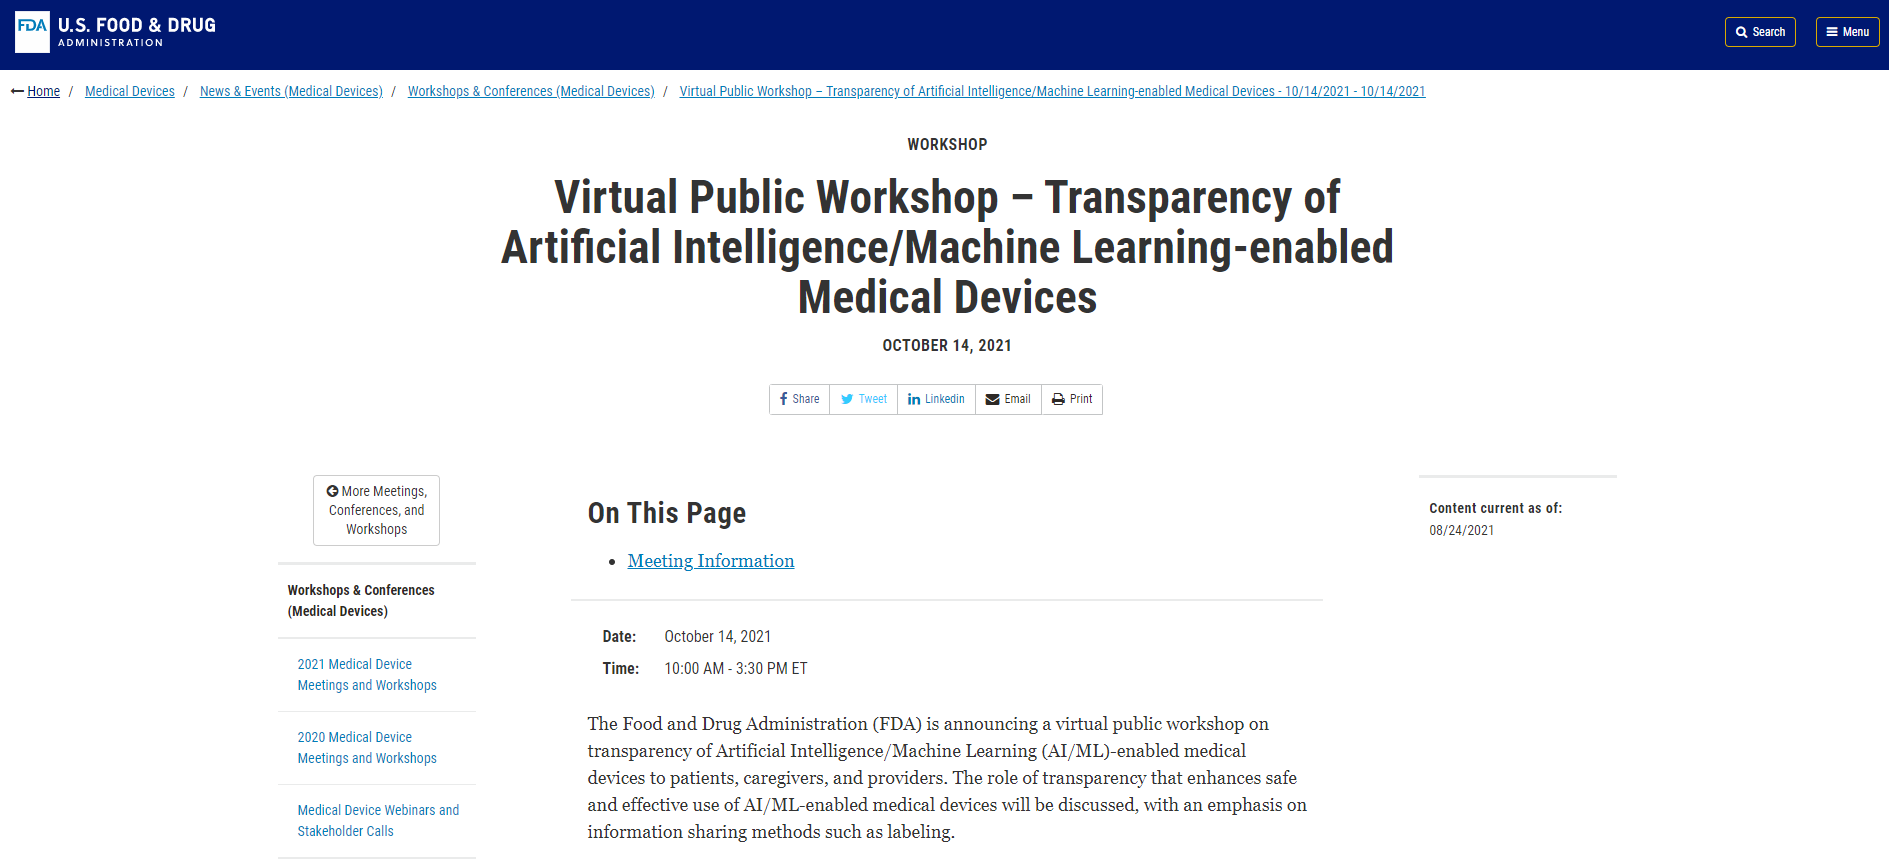 FDA Virtual Public Workshop on Transparency of Artificial Intelligence/Machine Learning-enabled Medical Devices